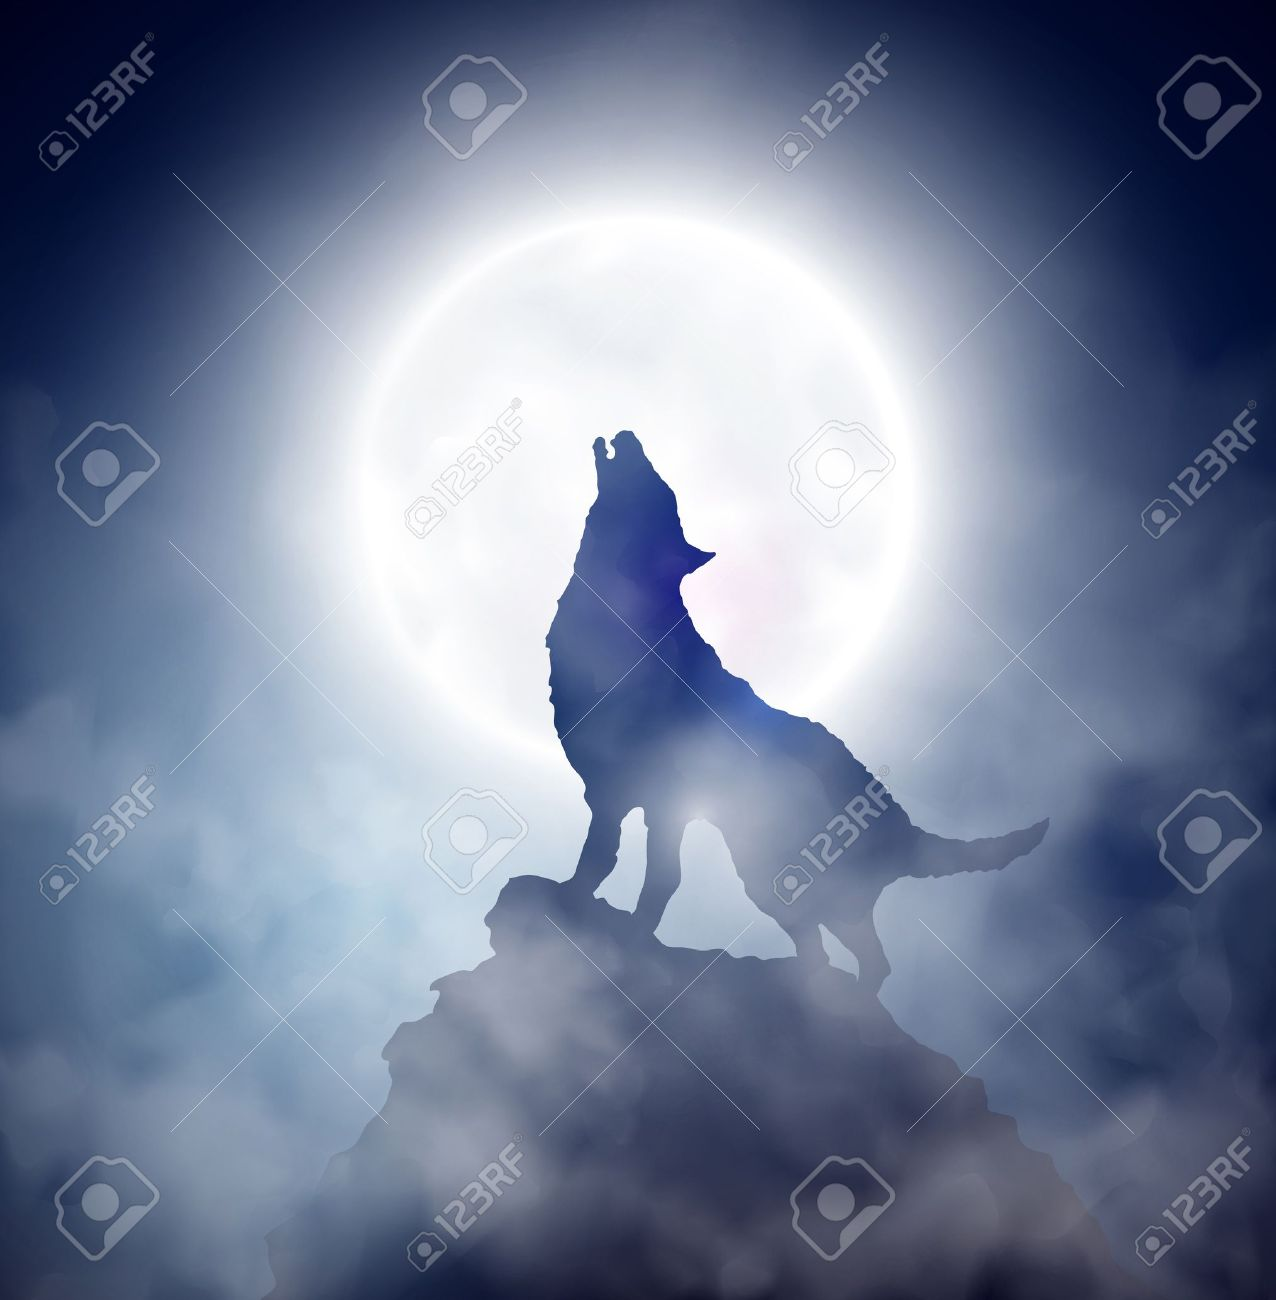 Howling: Wolf Howling At The Moon Illustration Howtodraw Wolves Part 4 By  ~dogwolf129 On